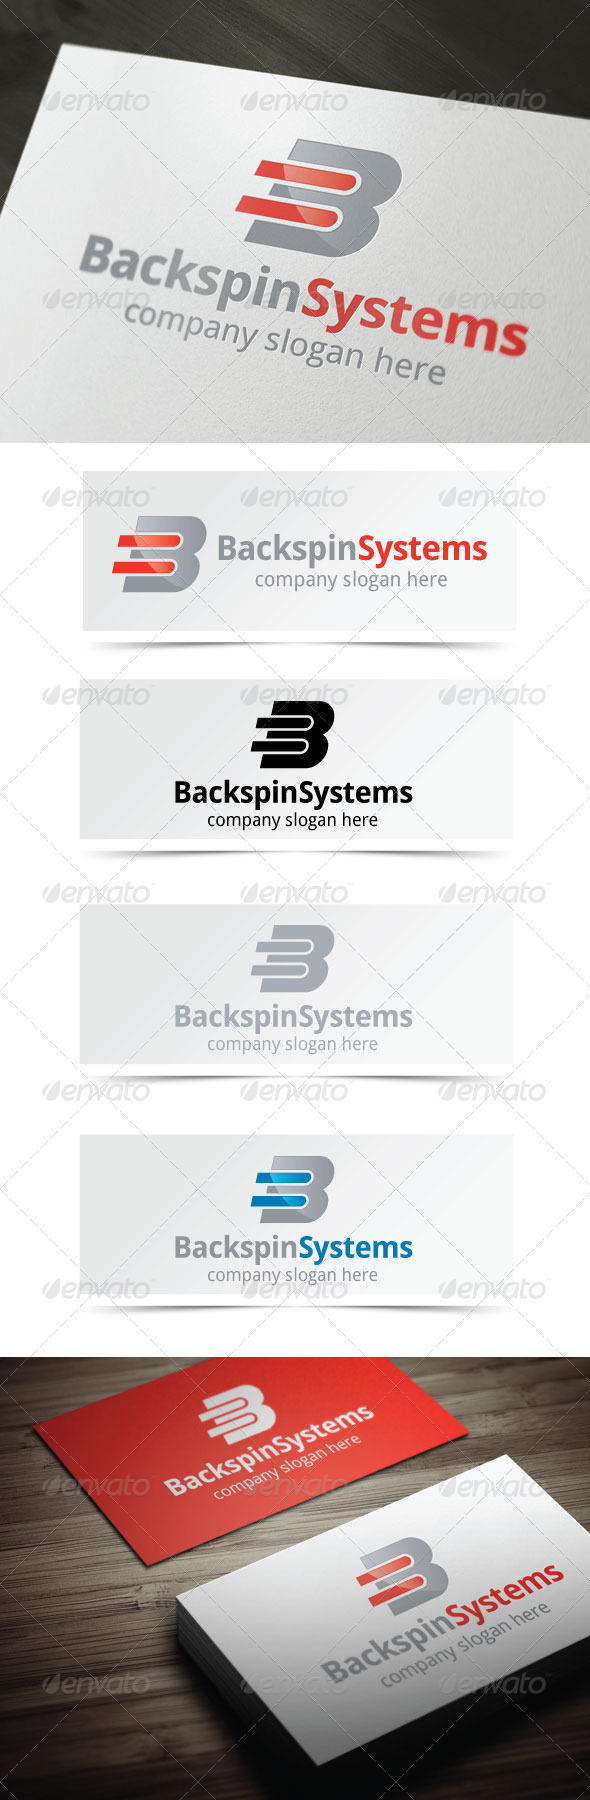 GraphicRiver Backspin Systems 4158511